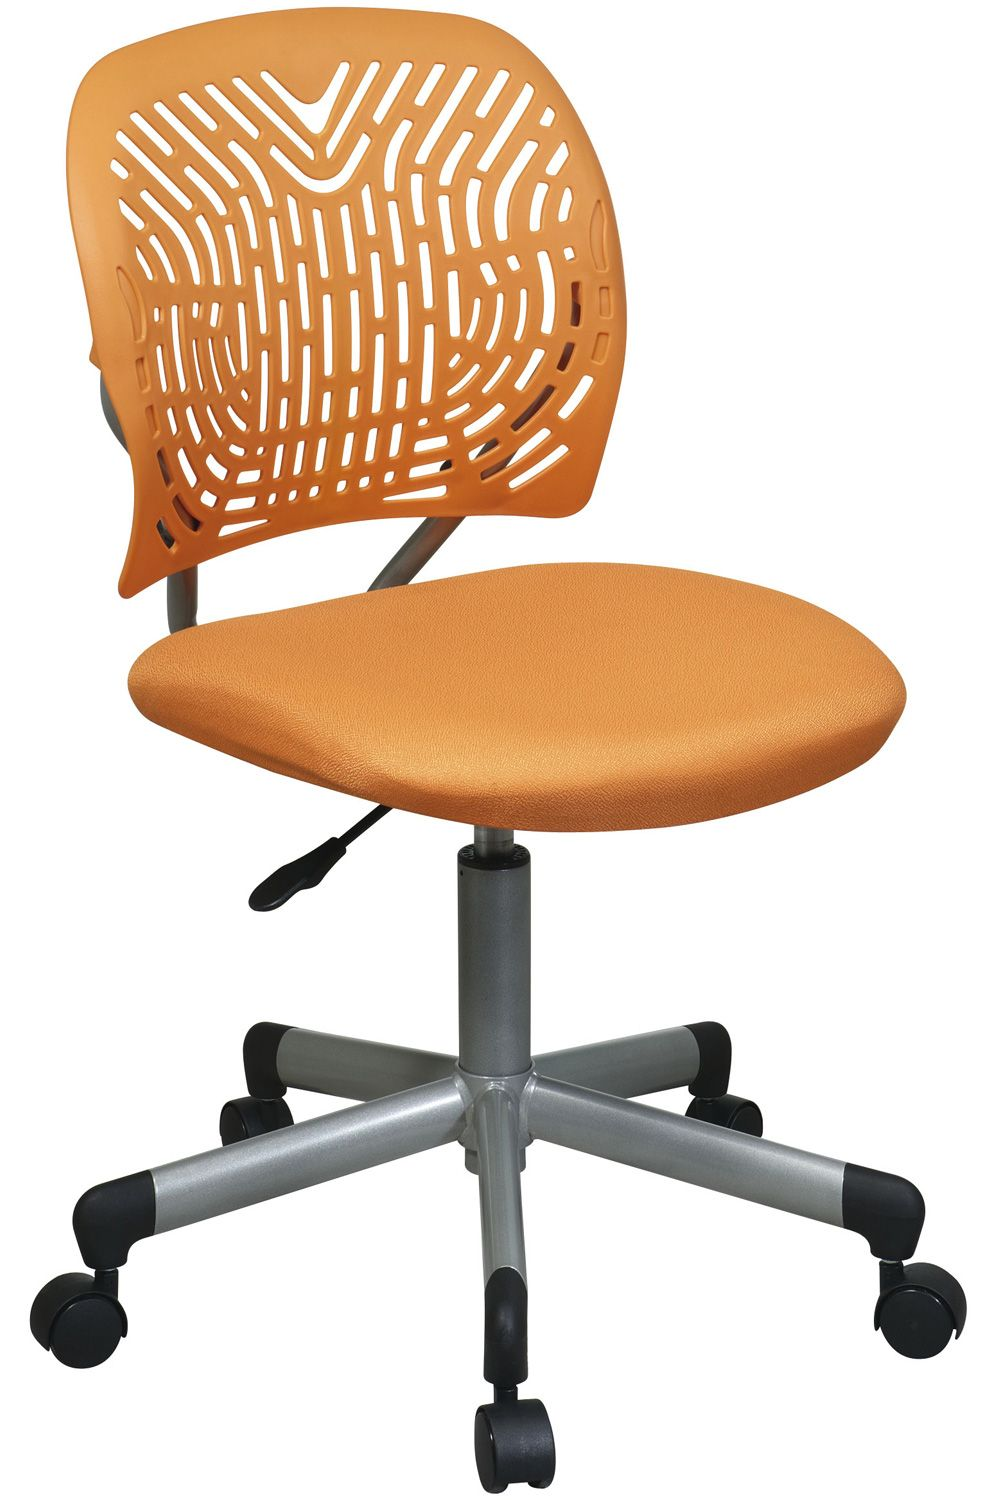 Fantastic Ergonomic Kids Desk Chair Furniture Computer Desk Gmtry Best Dining Table And Chair Ideas Images Gmtryco